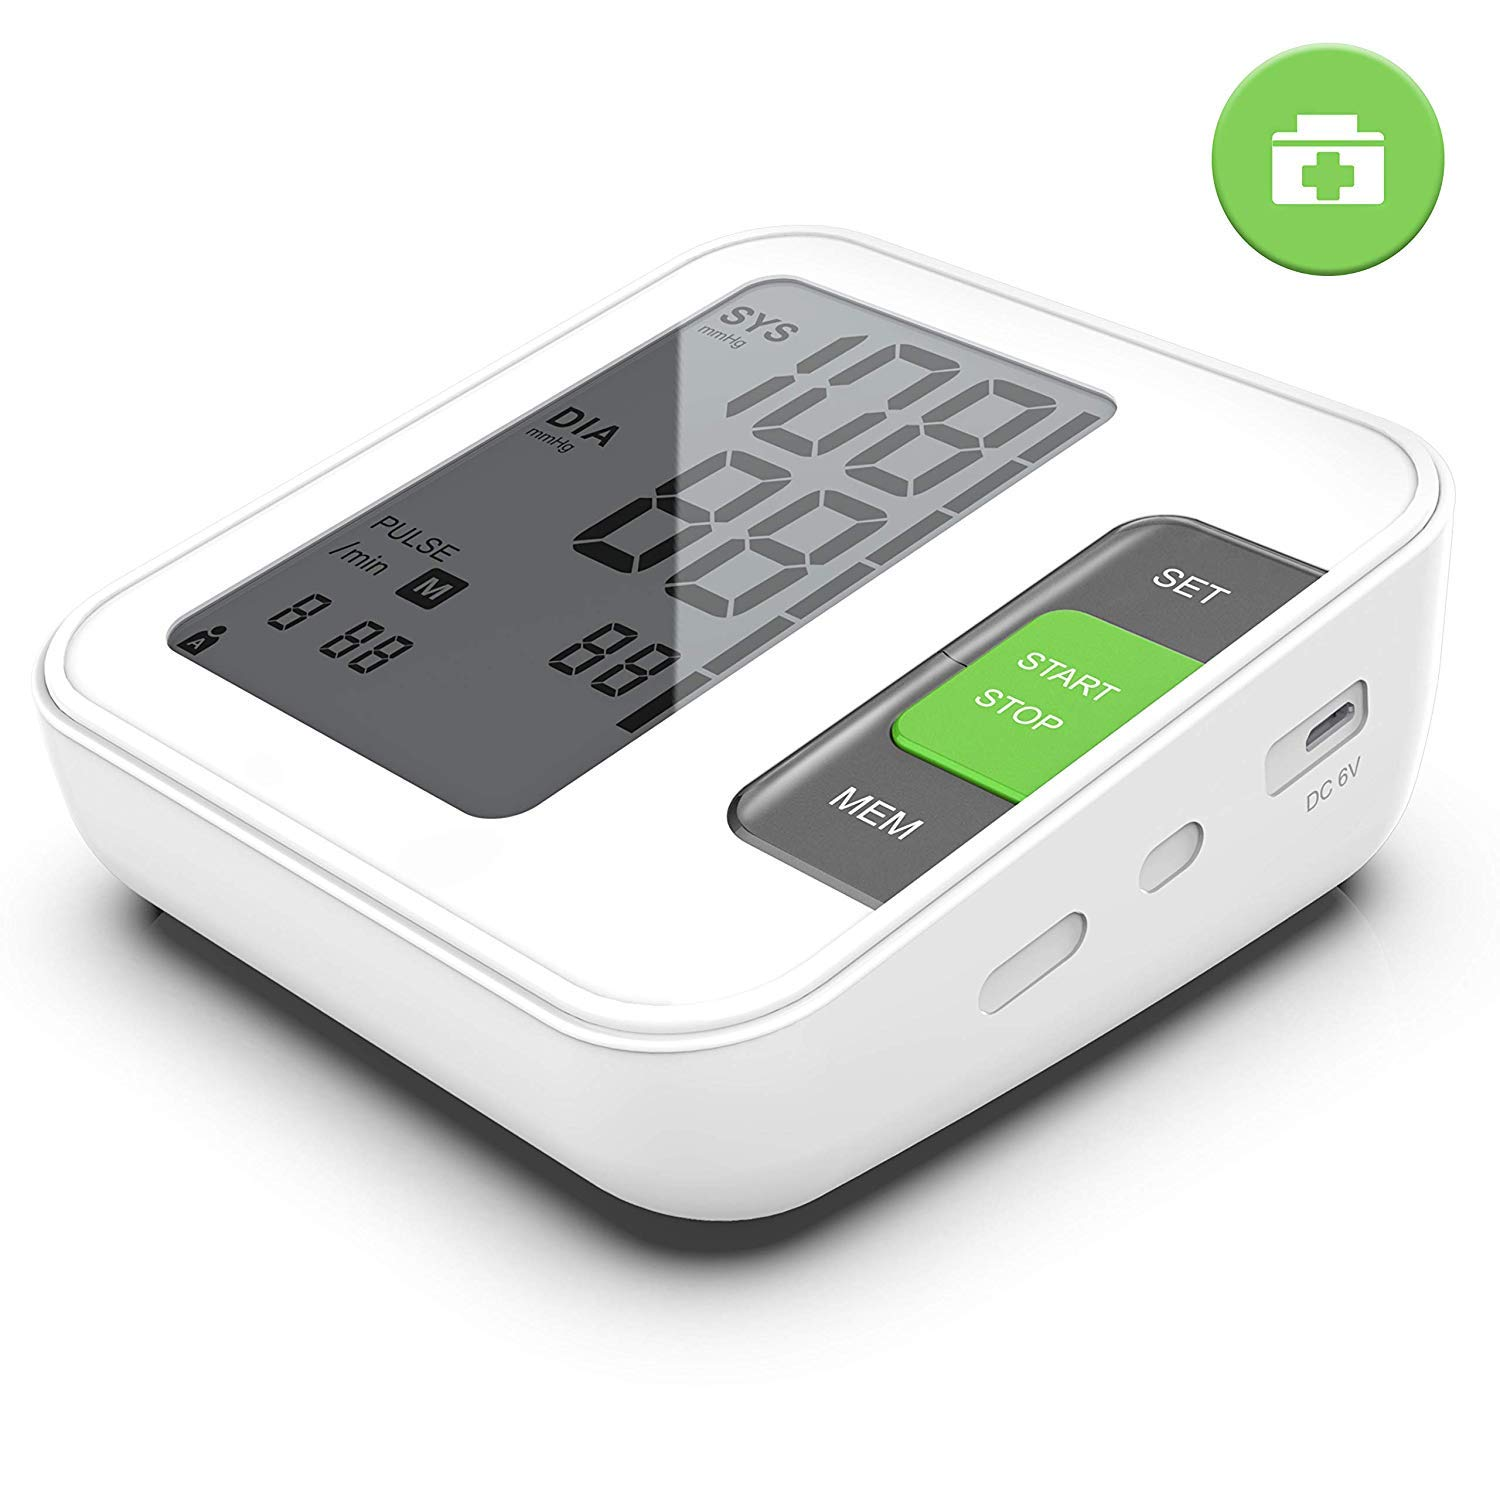 Latest Brand Blood Pressure Monitor - Approved for Arm Use - Digital Blood Pressure Machine BP ALLFORYOU091104 by STARLIKE